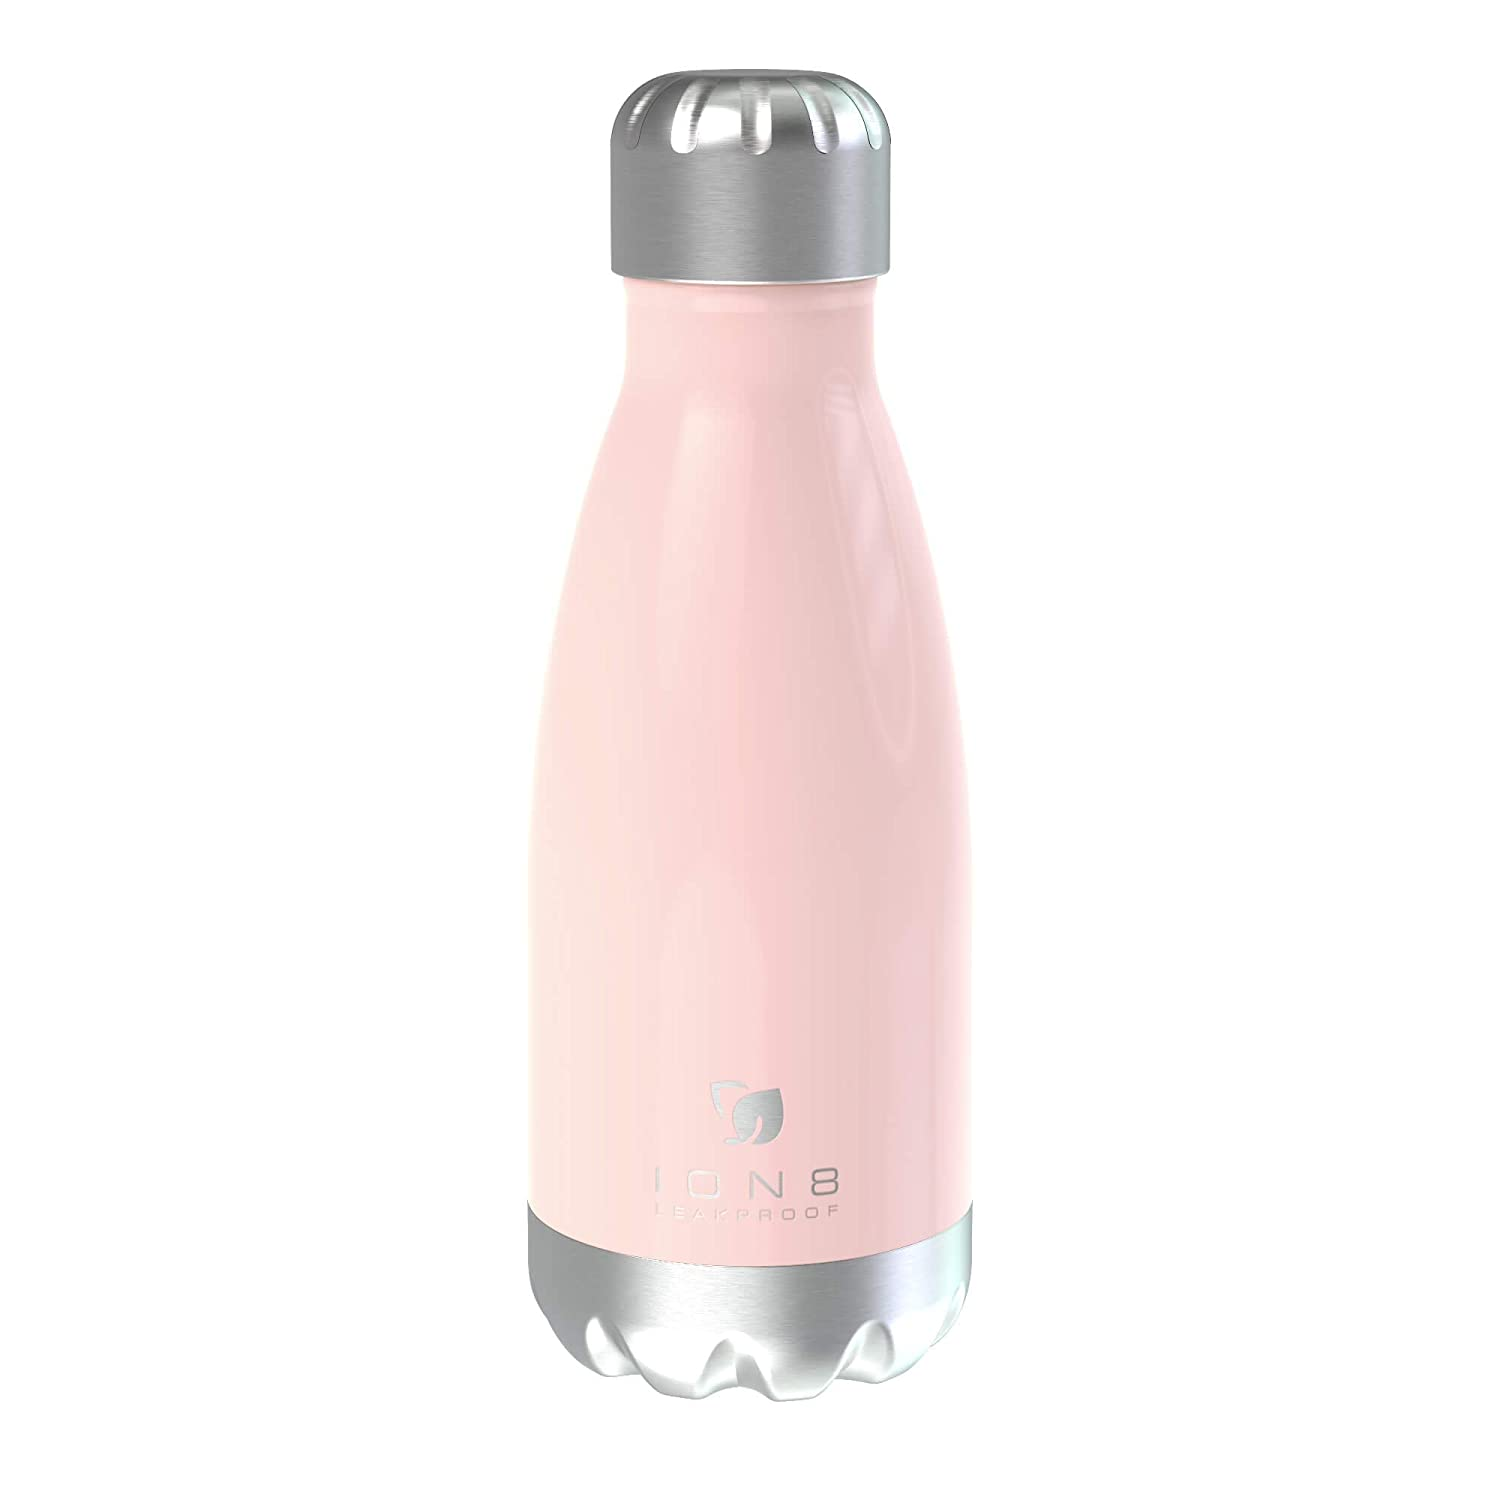 Ion8 Kid/'s Leak Proof Vacuum Insulated Flask /& Reusable Stainless Steel Water Bottle 10oz 280ml